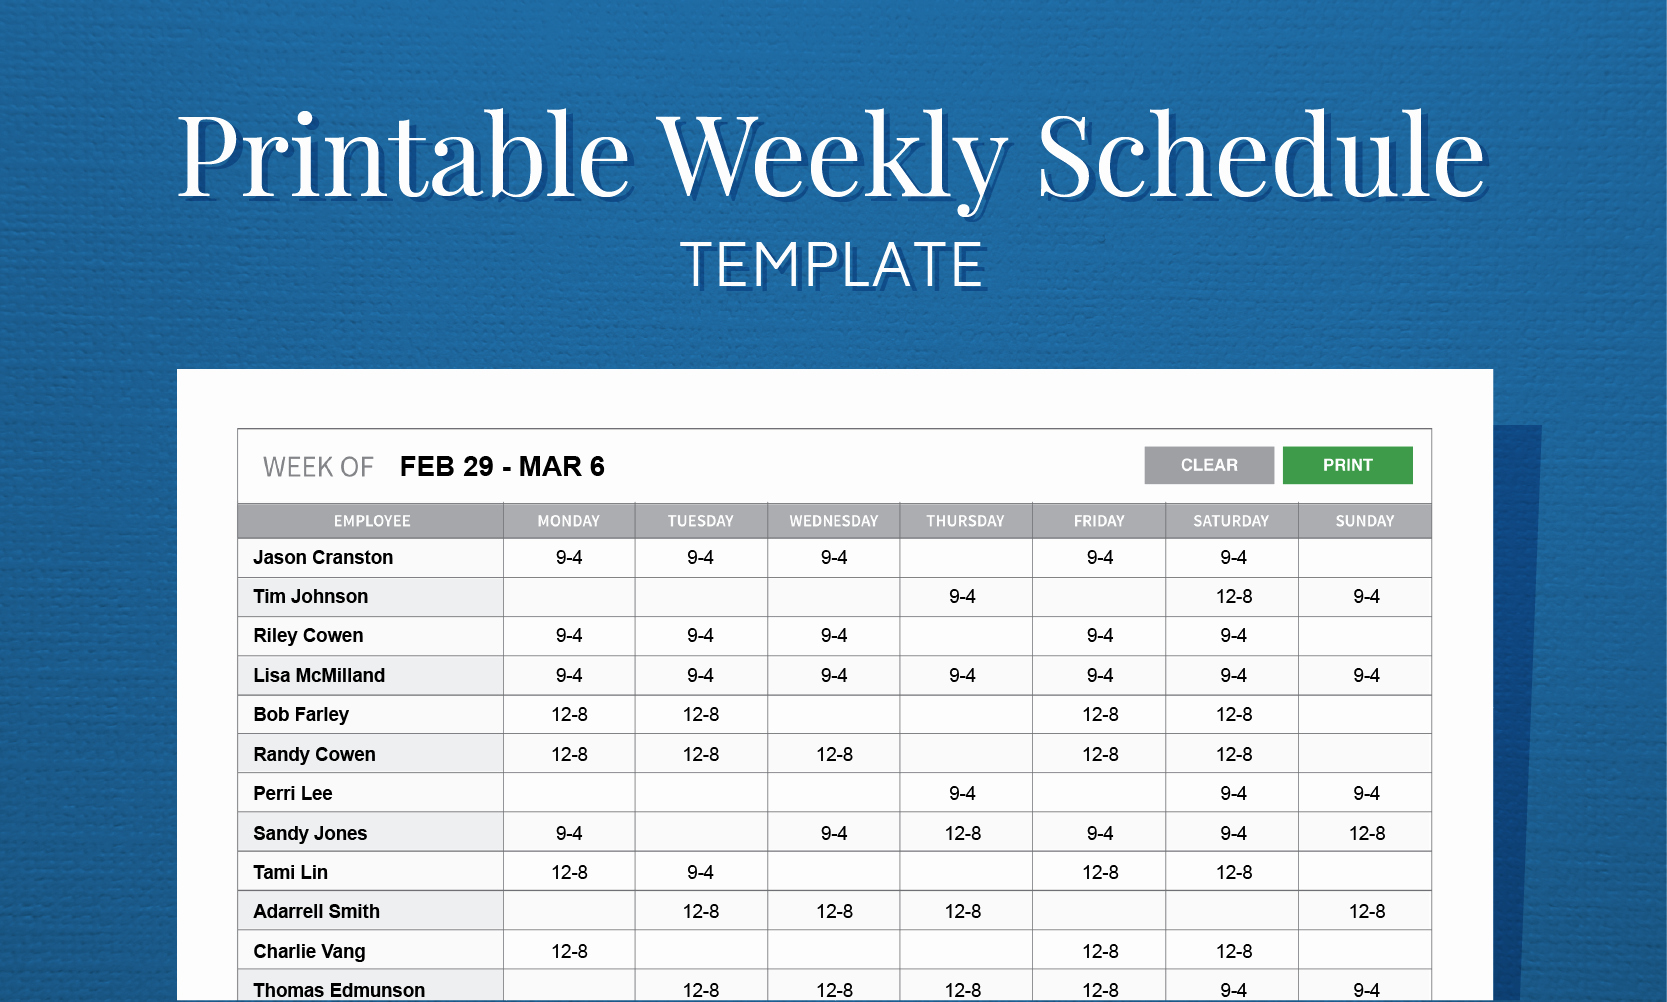 Free Employee Schedule Template Fresh Free Printable Work Schedule Template for Employee